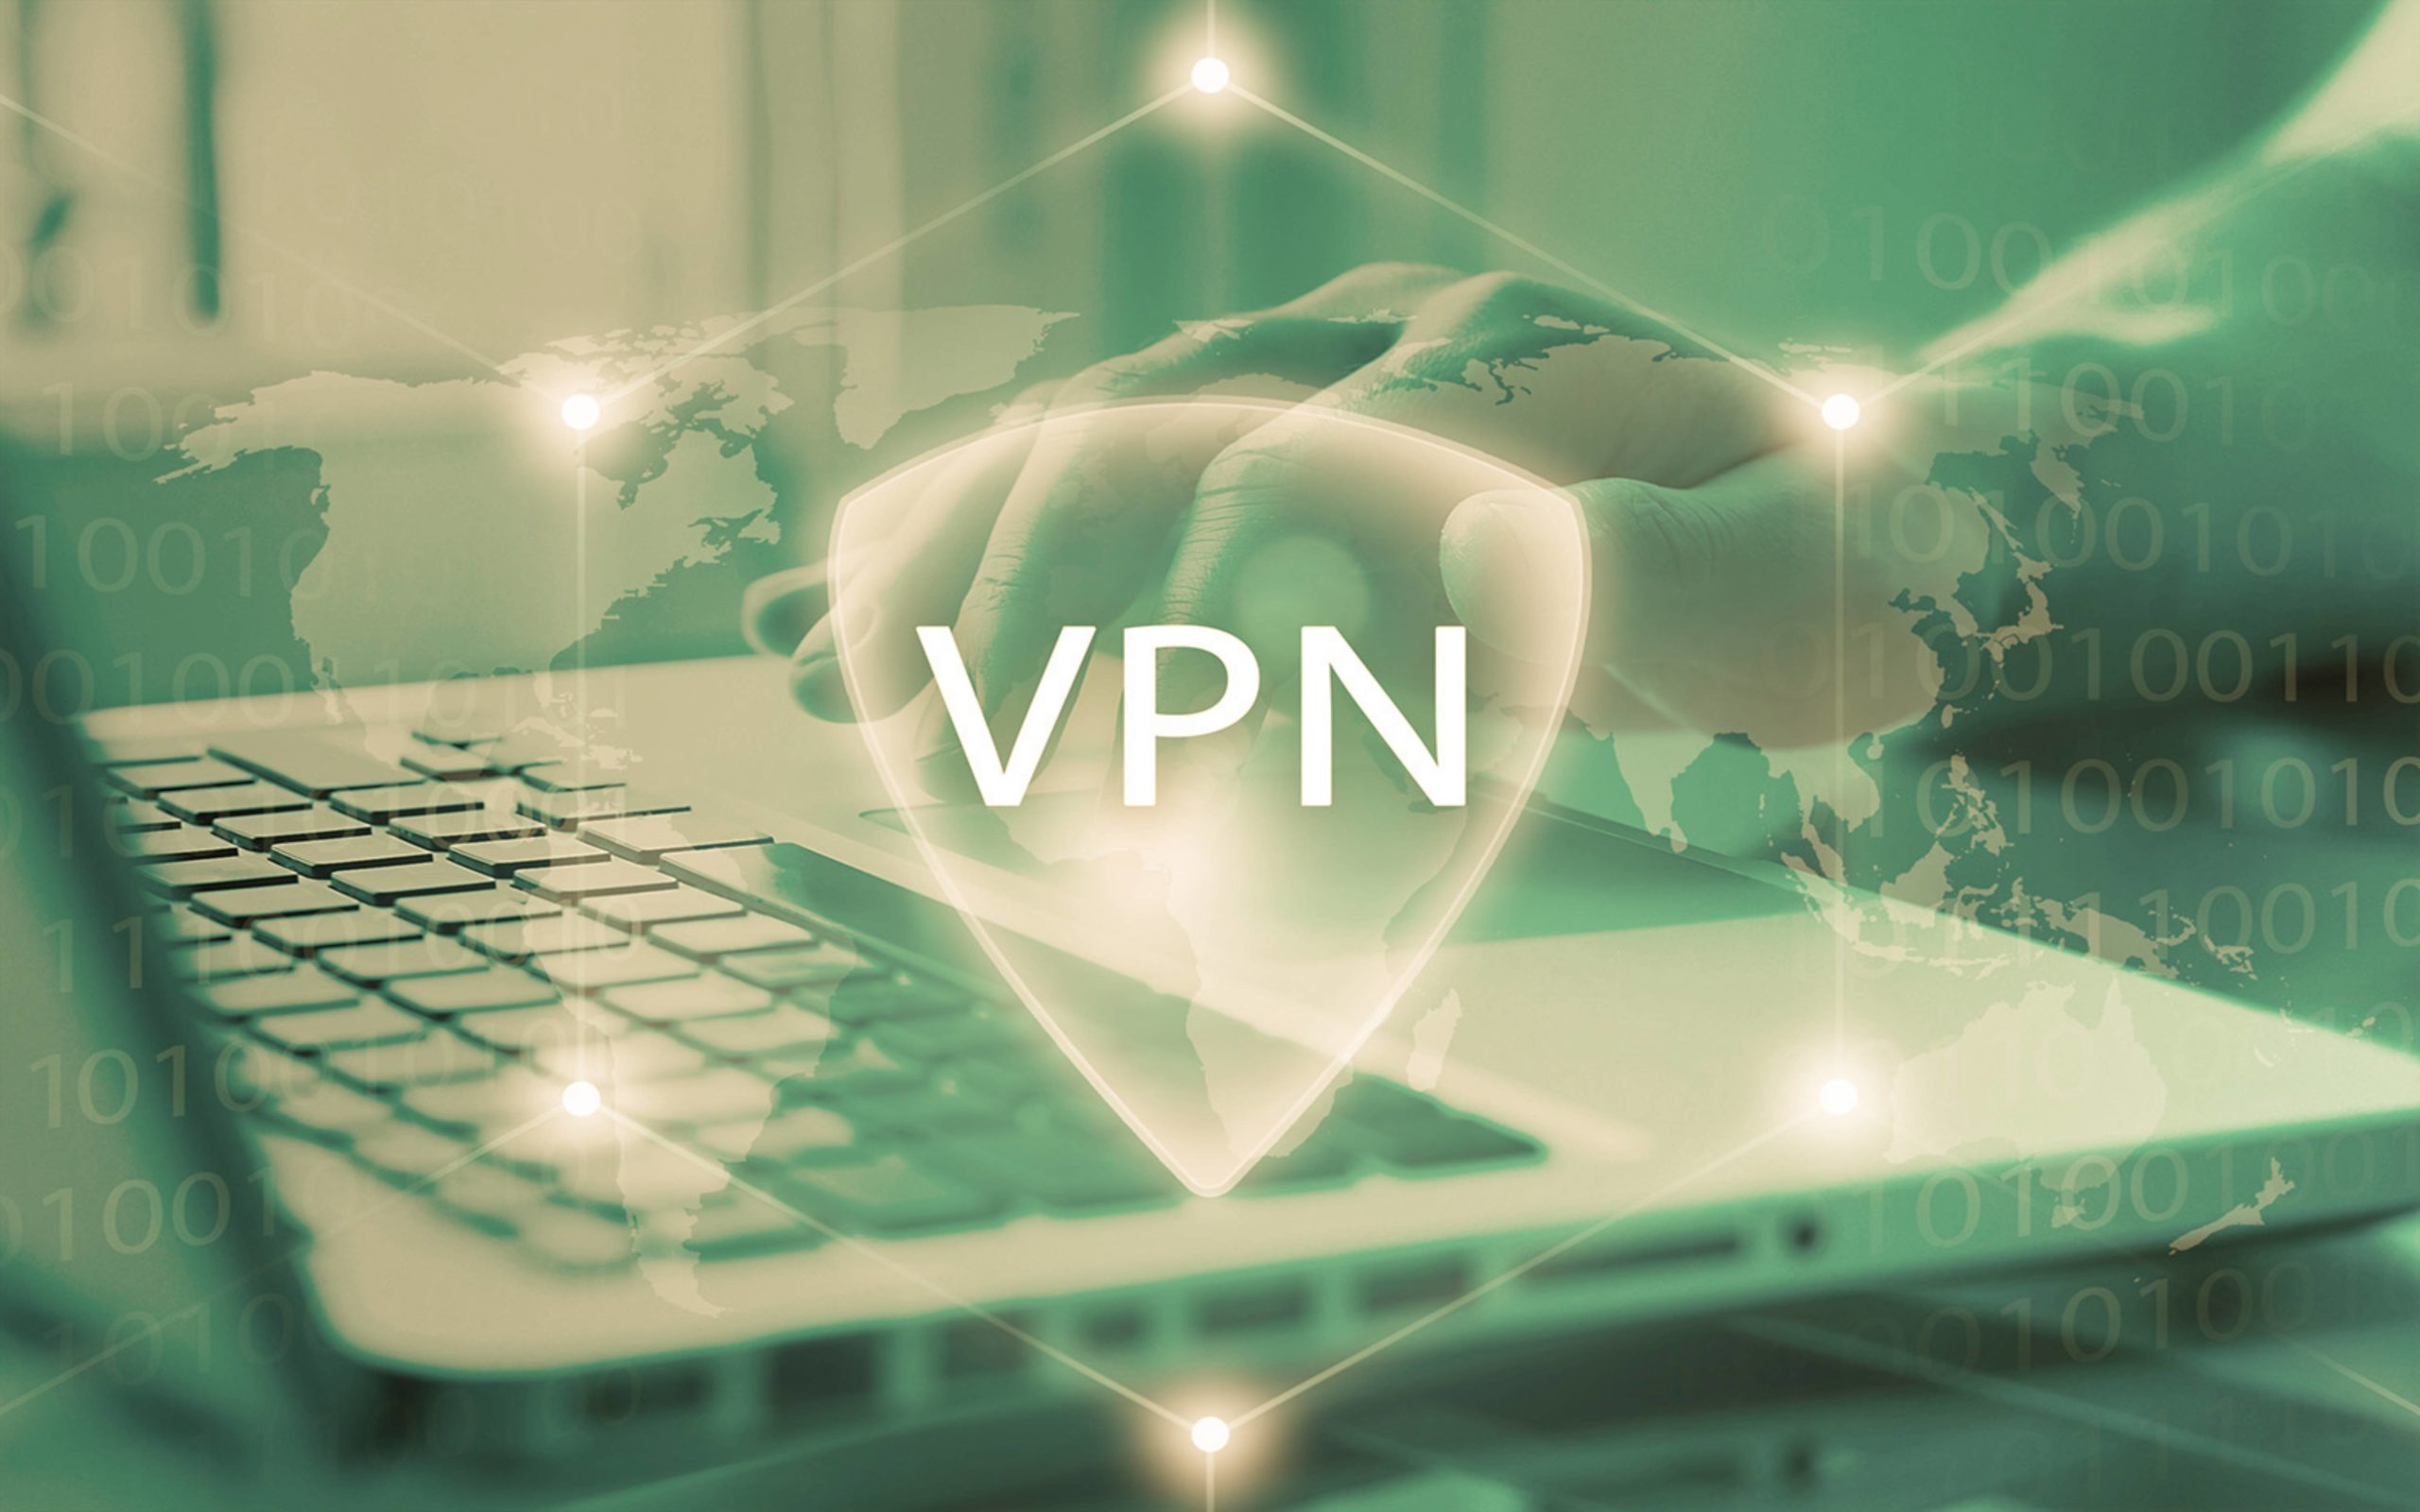 VPN: What Is It & What Uses Does It Have?